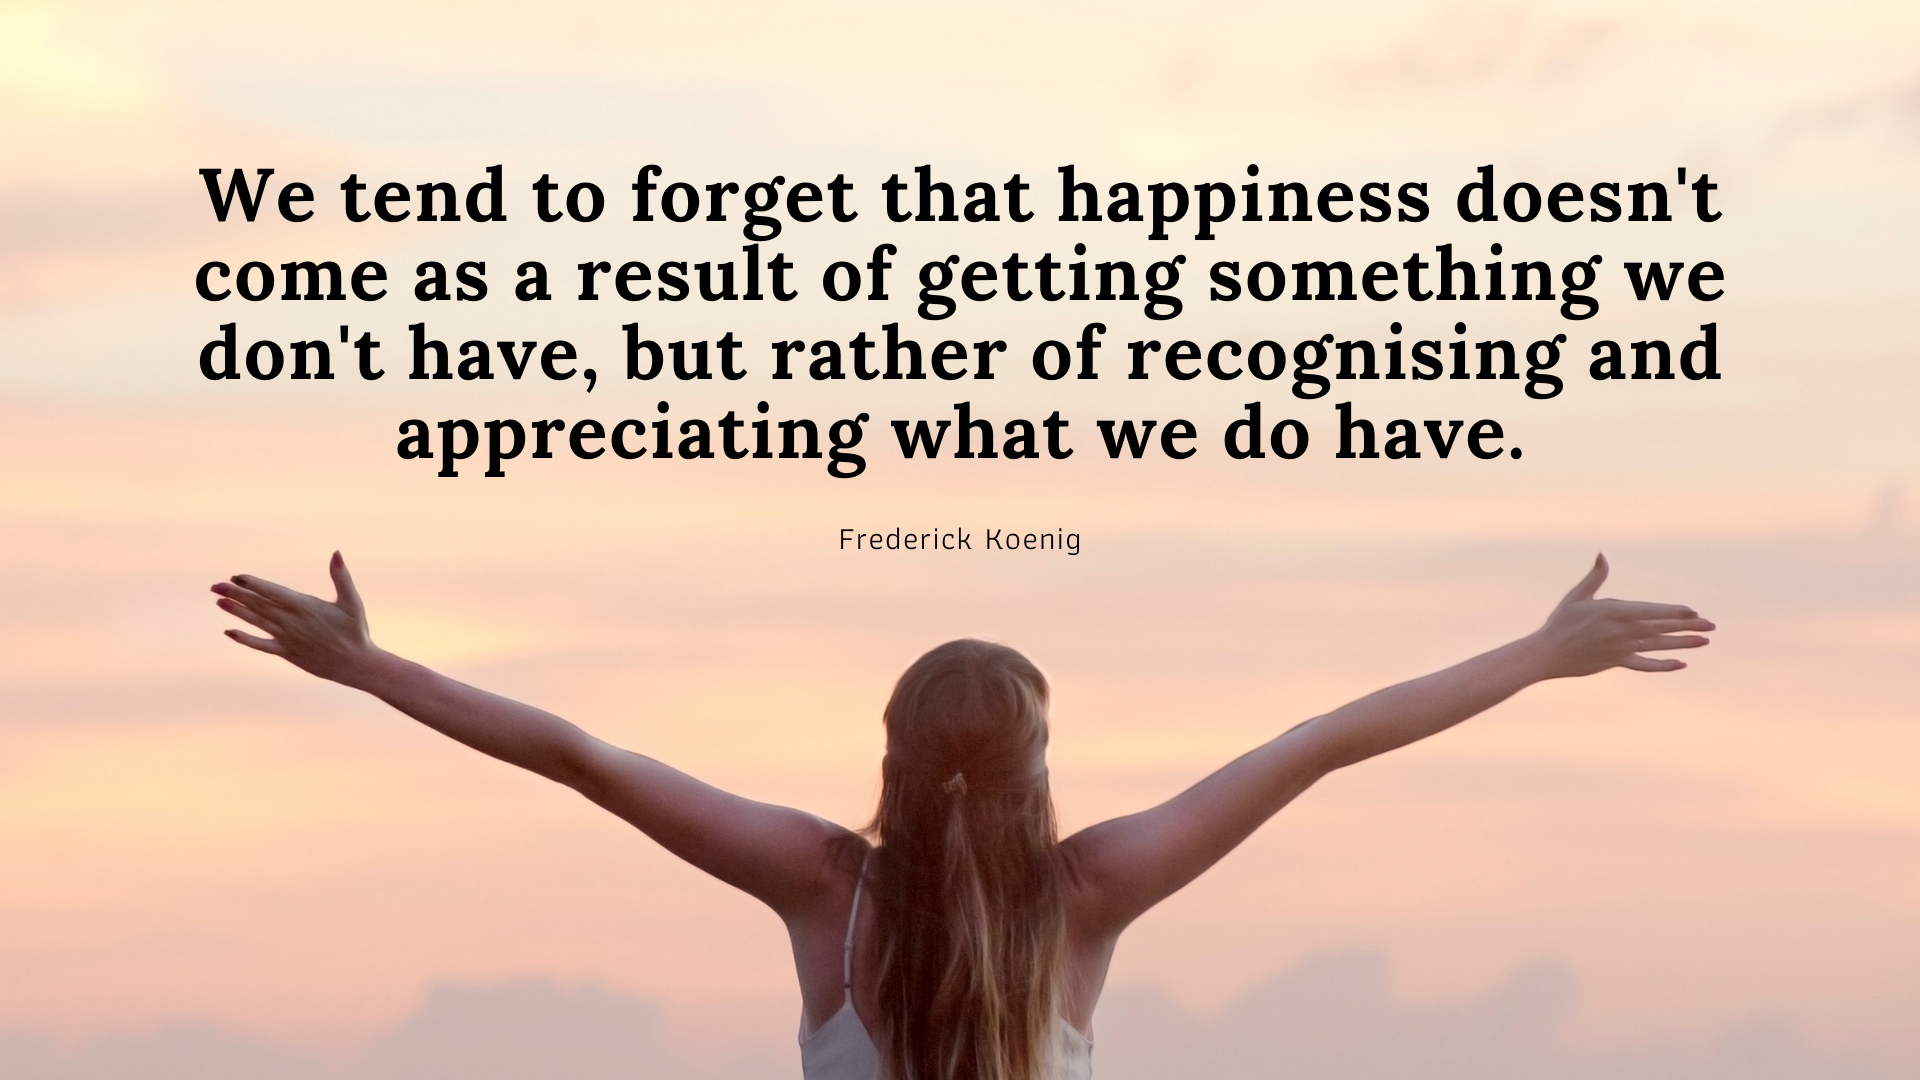 We tend to forget that happiness doesn't come as a result of getting something we don't have, but rather of recognising and appreciating what we do have. – Frederick Koenig[1920×1080]